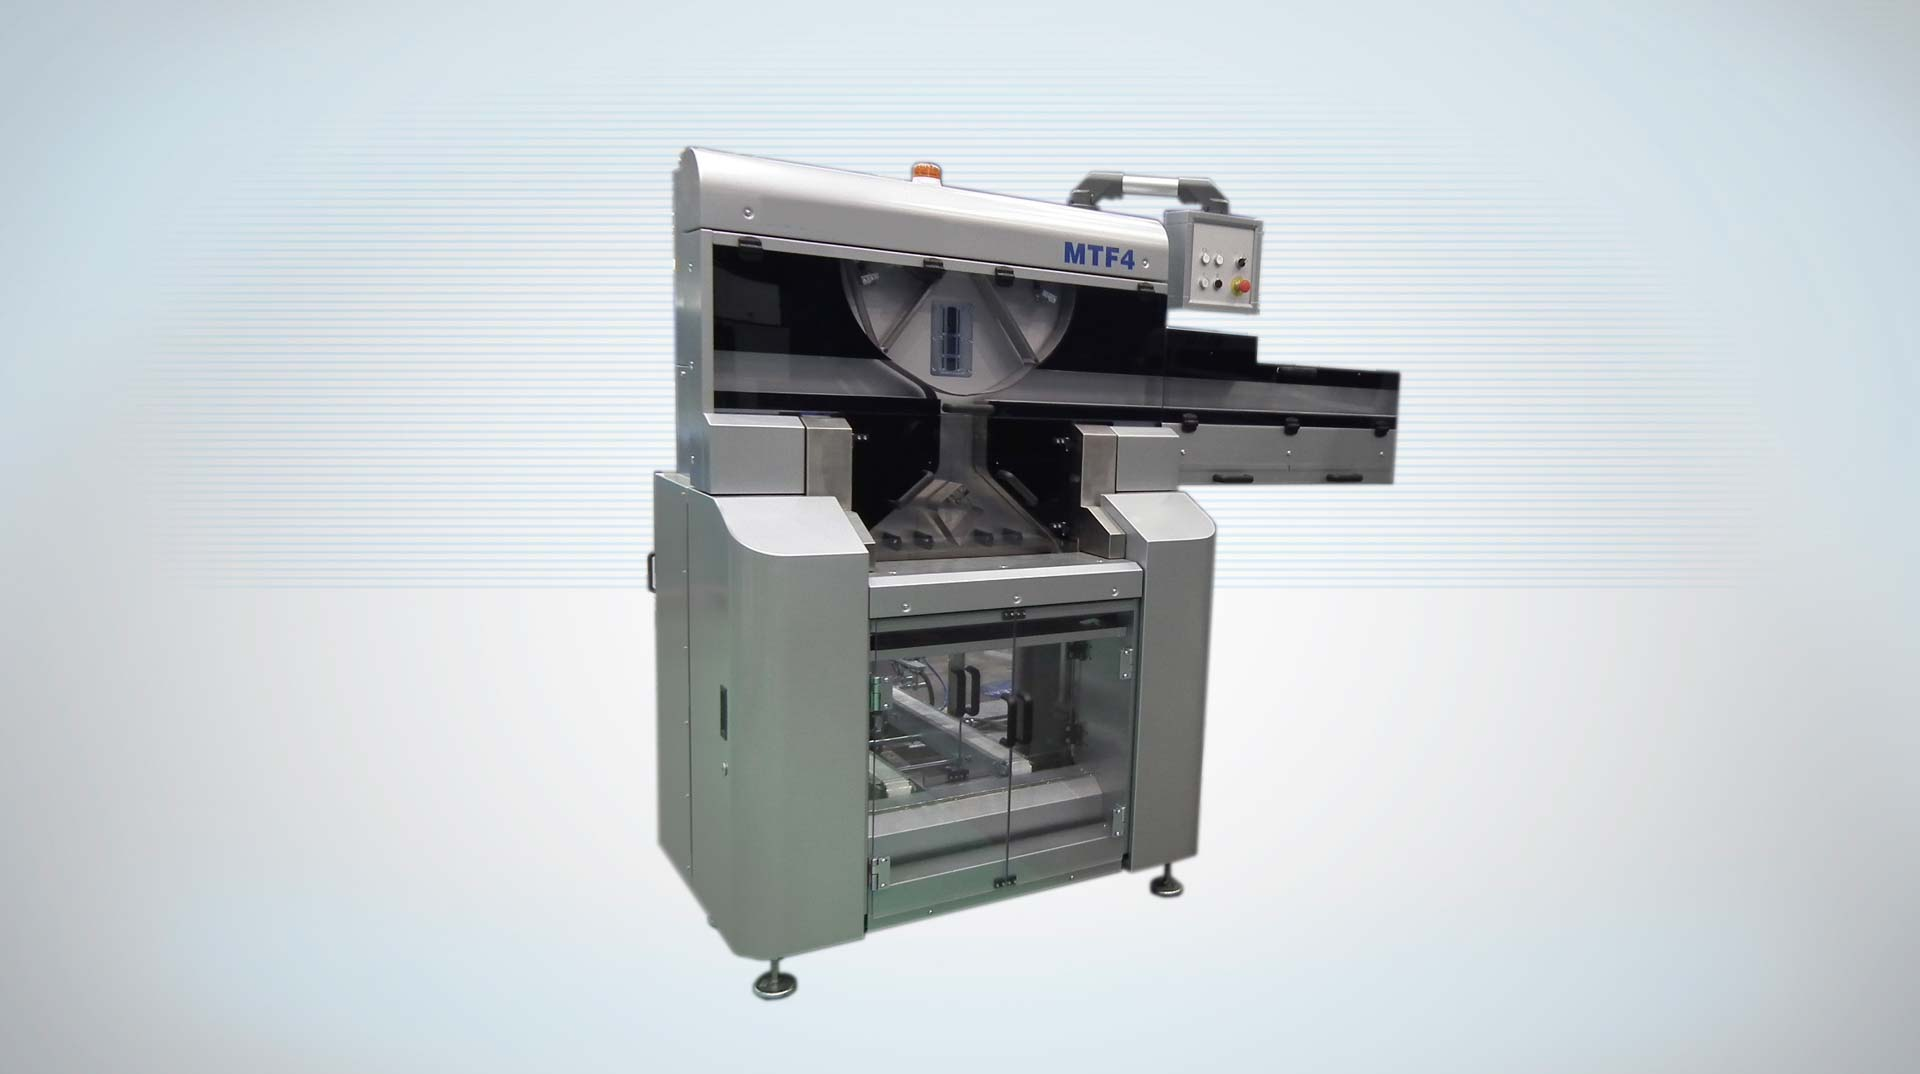 MTF 4 Tray Filler - Buffering & Line Balancing Solutions